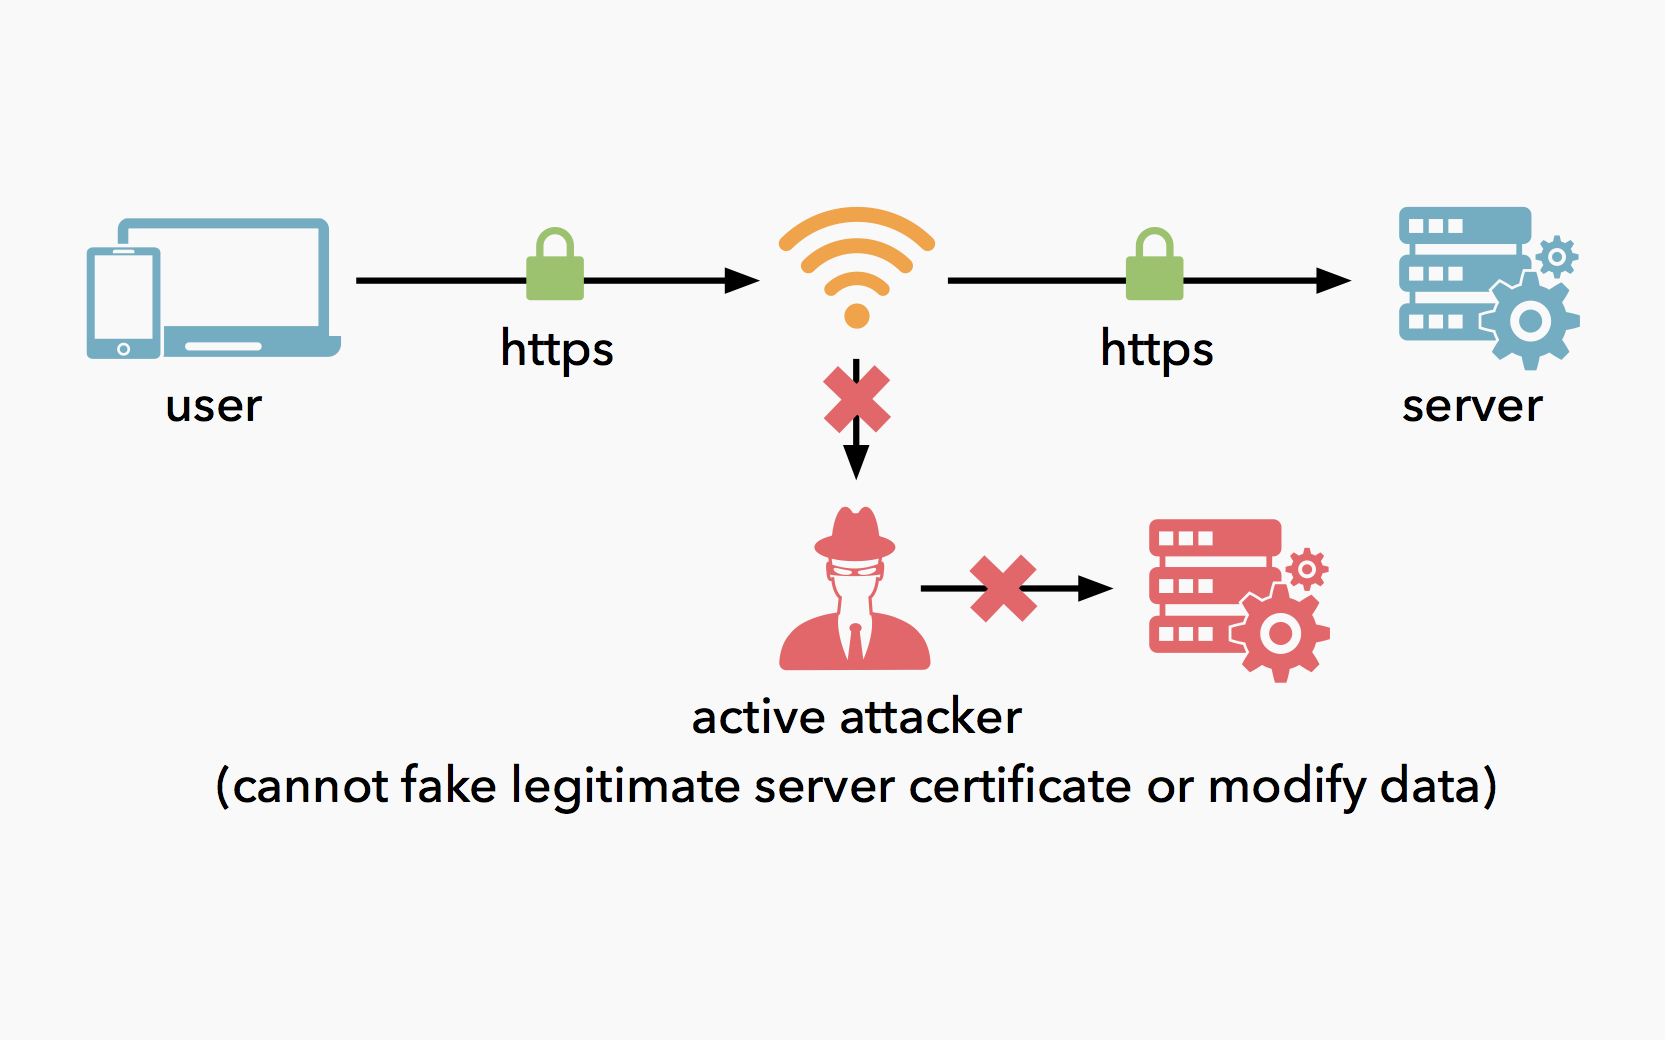 HTTPS active attacker cannot fake legitimate server certificate or modify data.